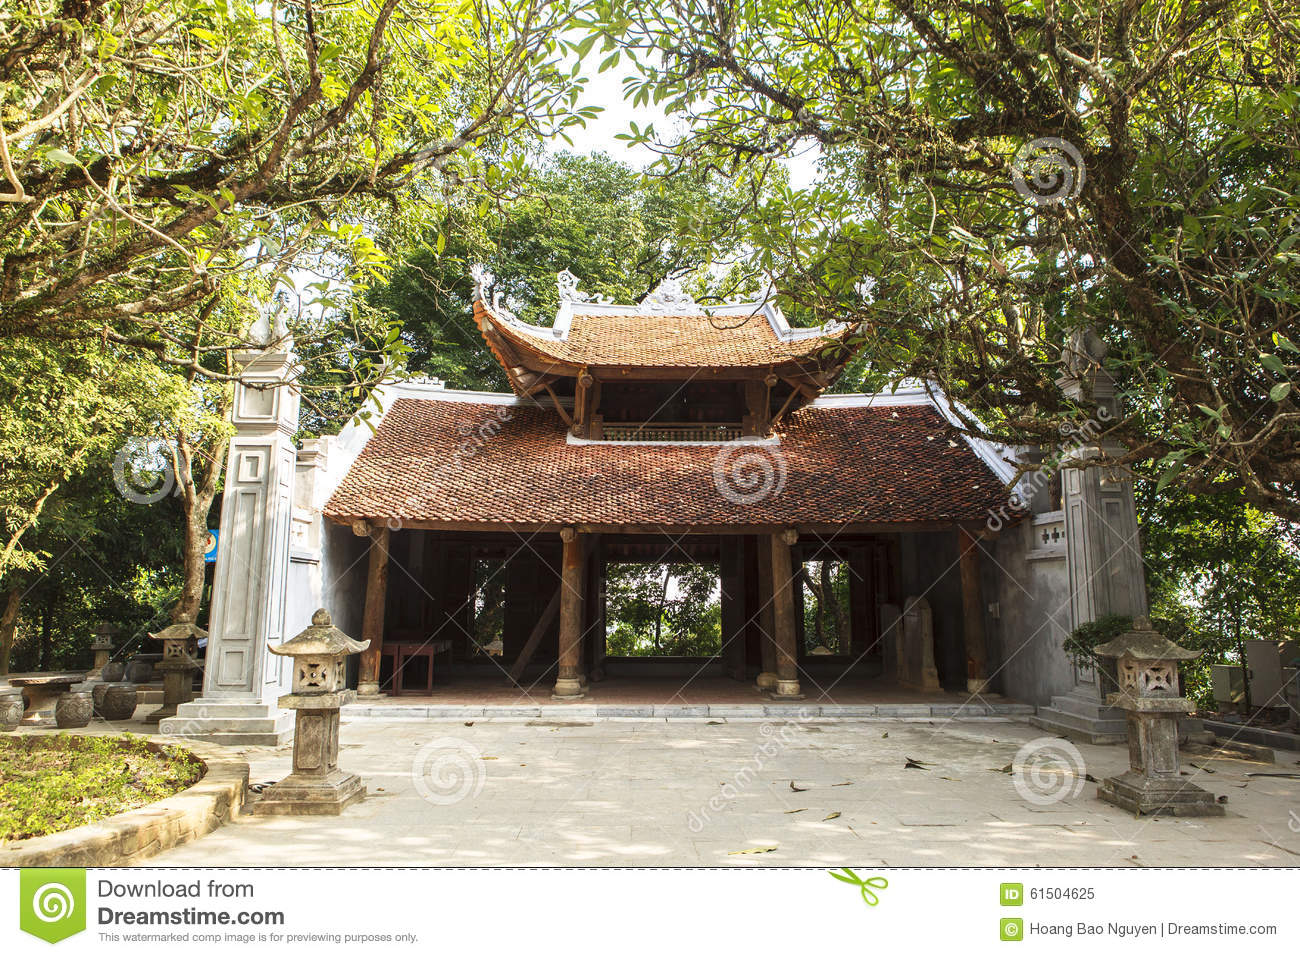 Phu Tho Vietnam  City pictures : ... the hung kings temple phu tho vietnam the area of hung kings temple